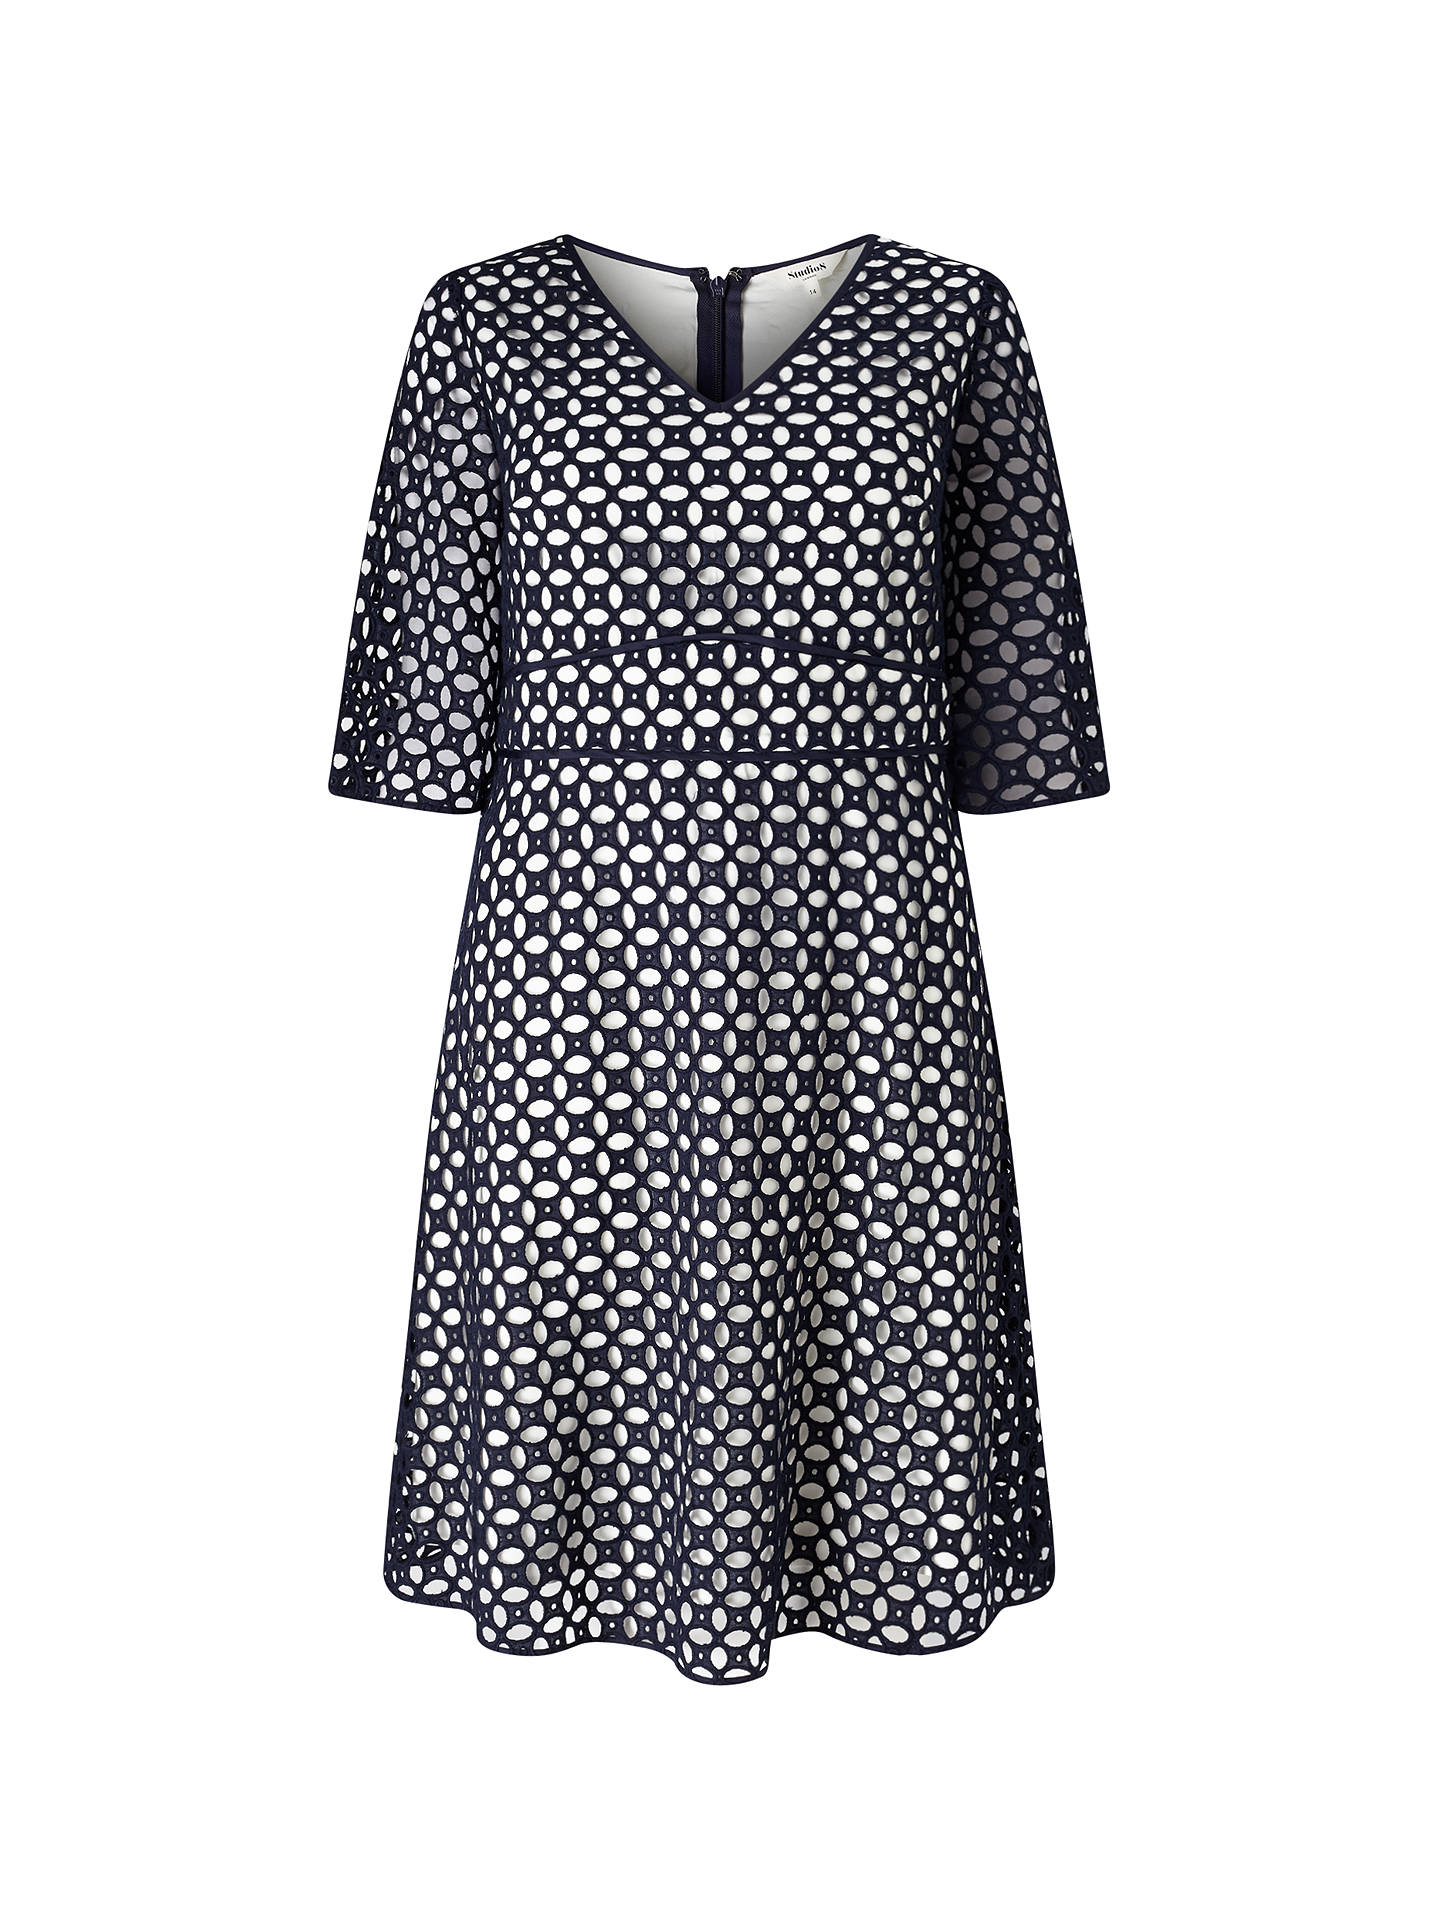 BuyStudio 8 Liza Broderie Anglais Dress, Navy/Multi, 12 Online at johnlewis.com